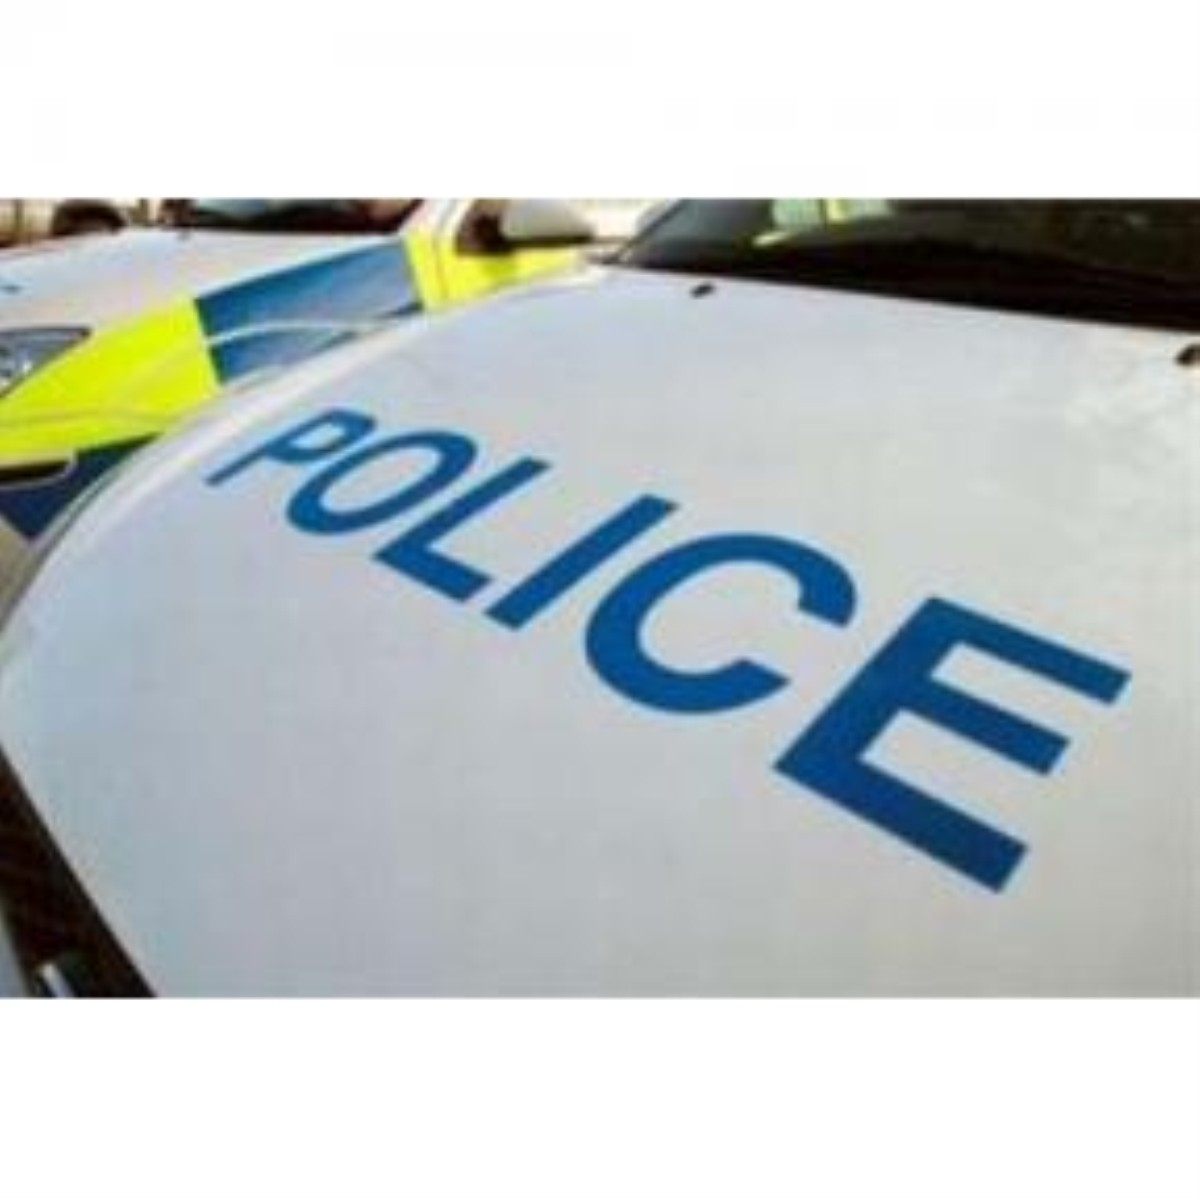 Chorley couple in sixties attacked